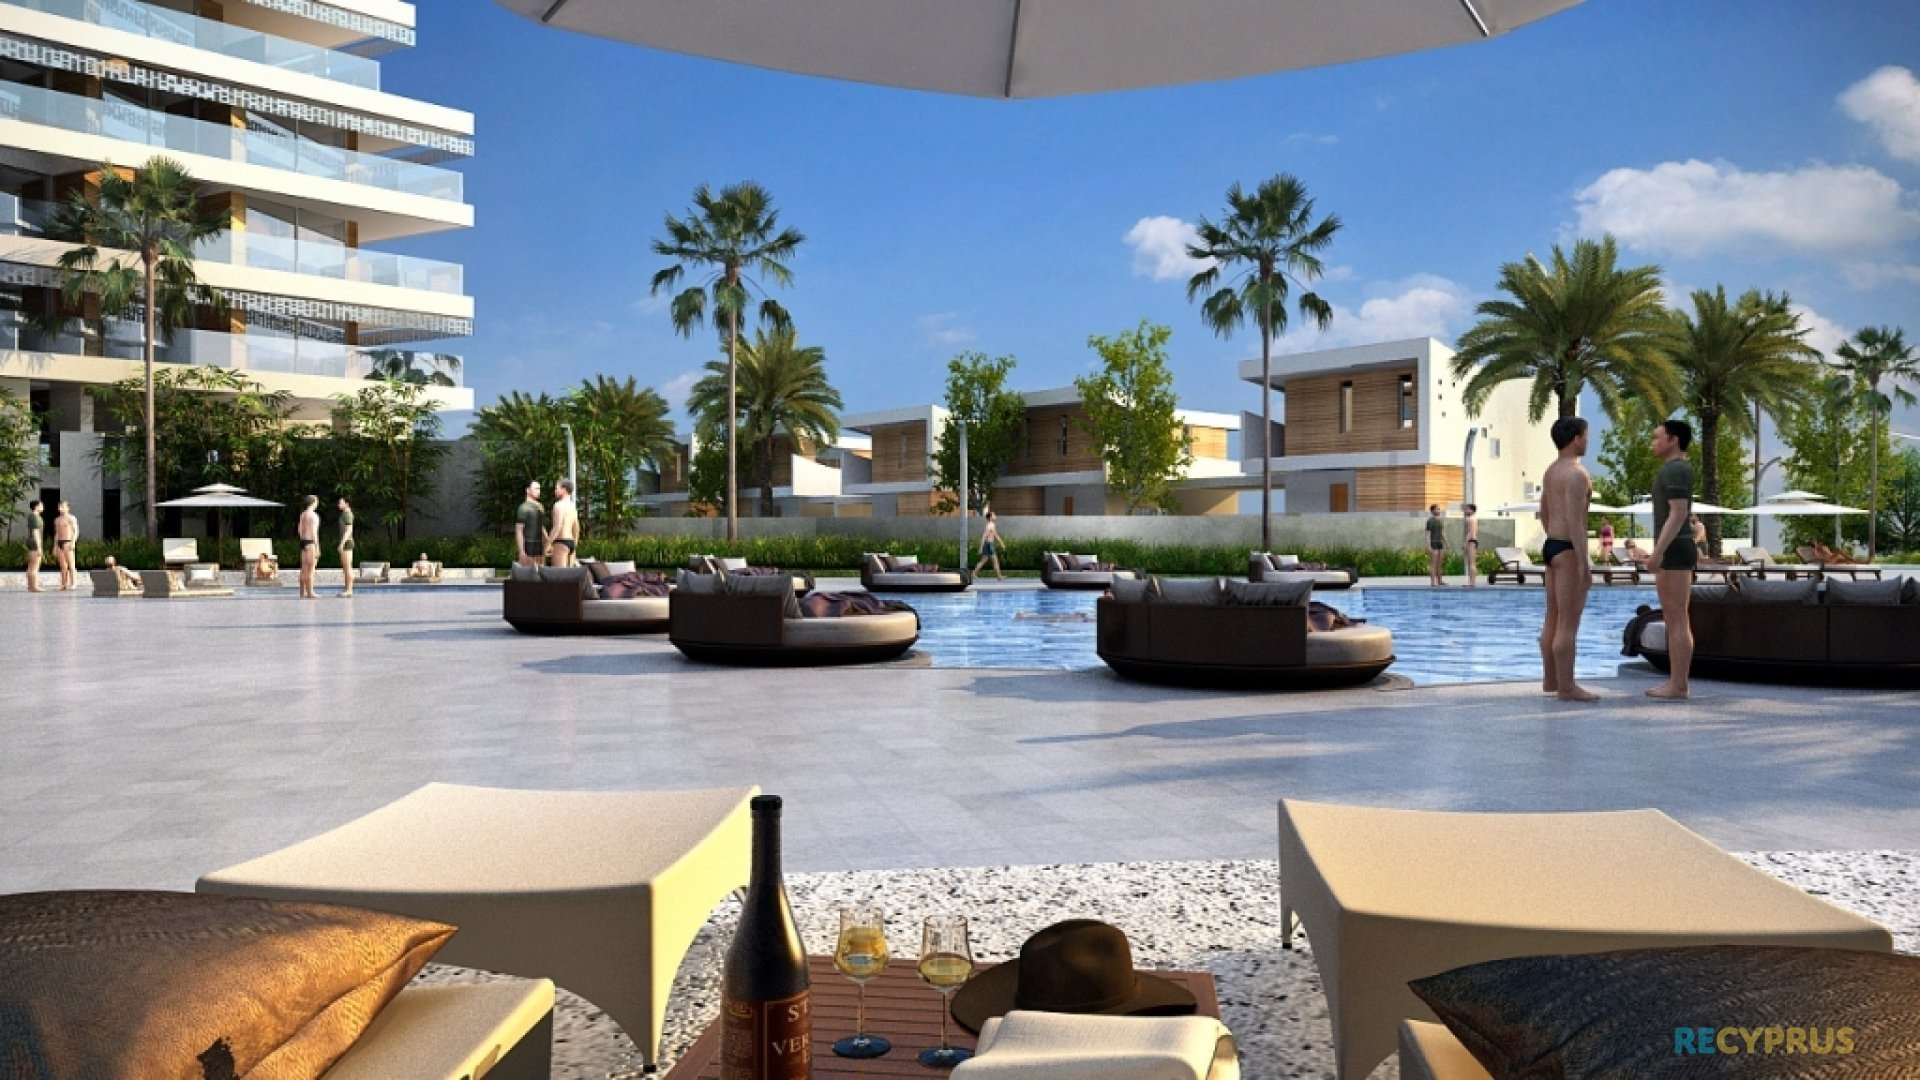 Apartment for sale Ayia Thekla Famagusta Cyprus 13 3477